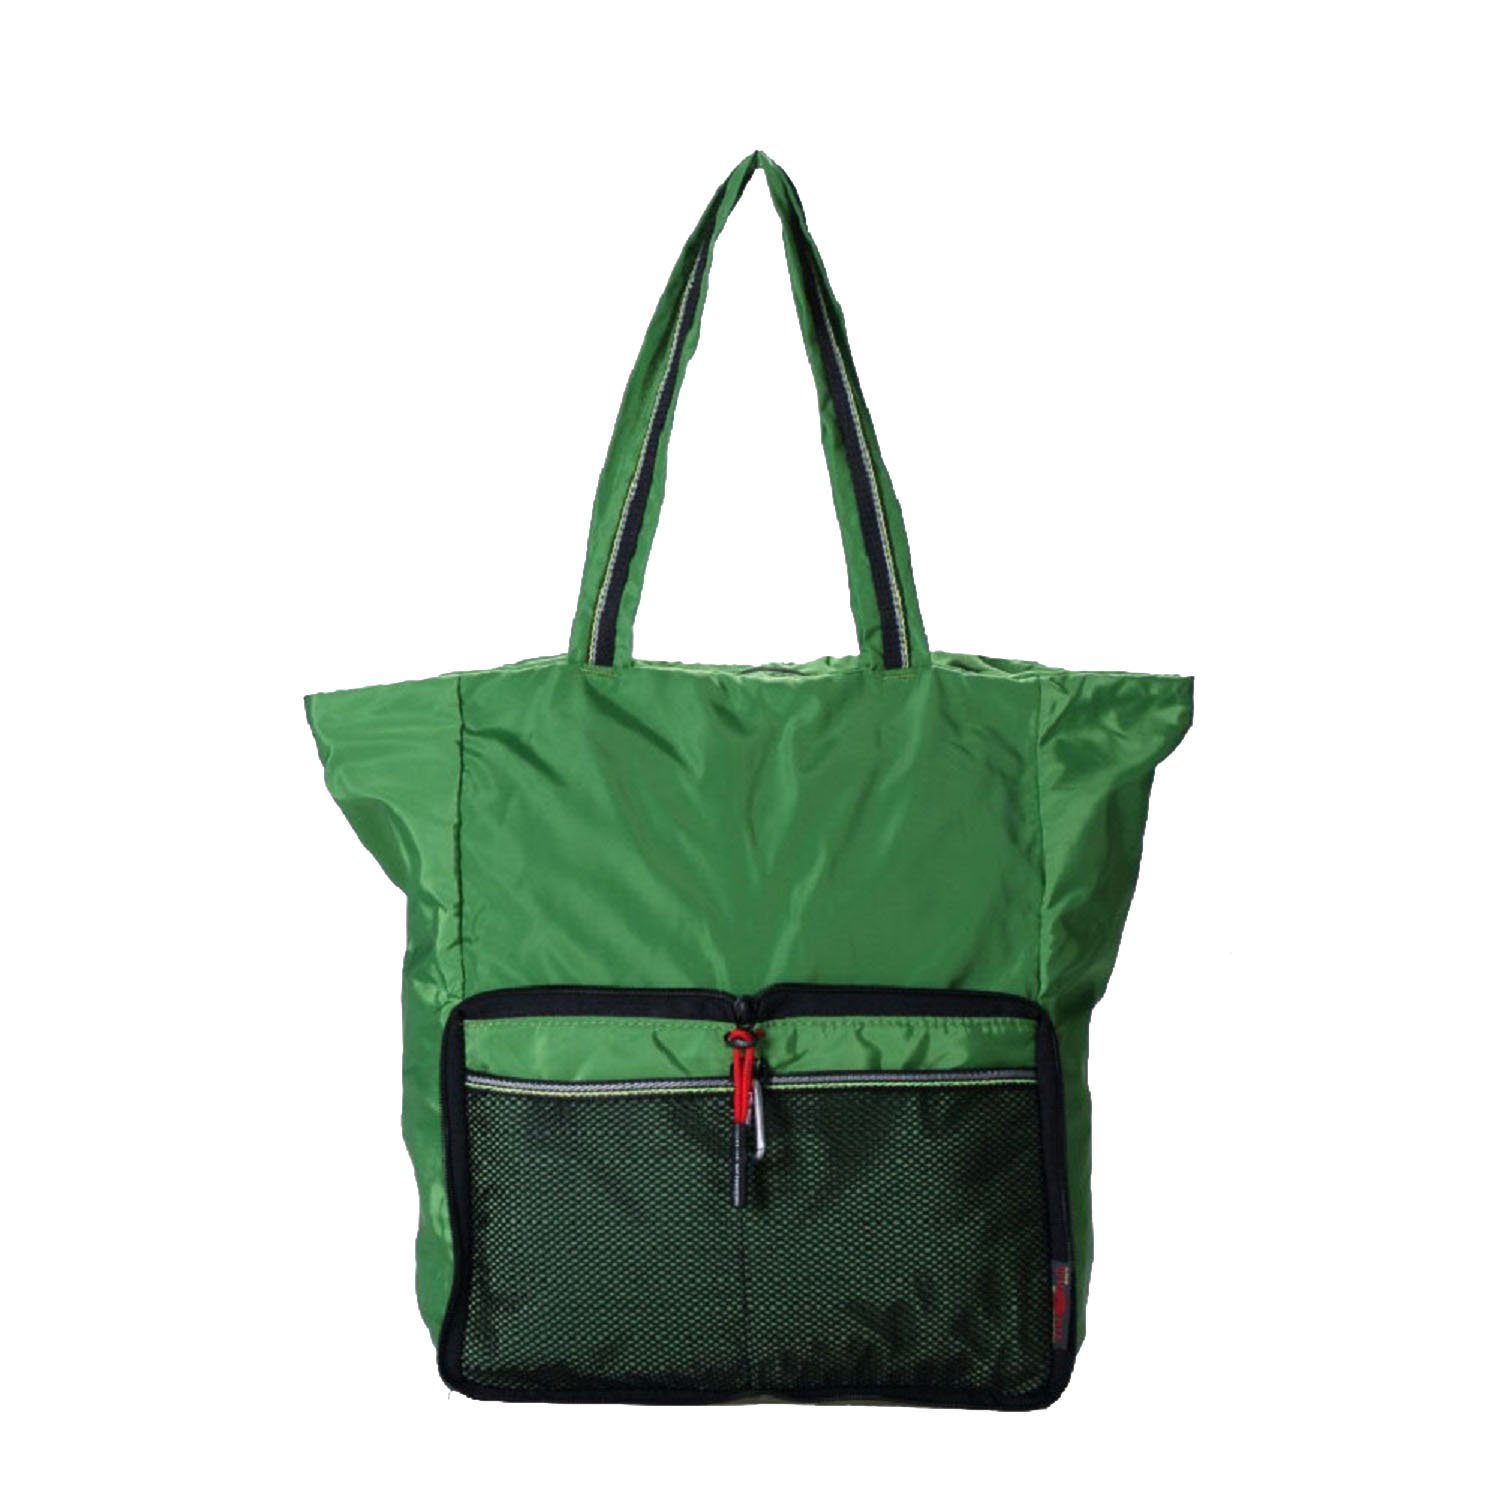 Daygos Lightweight Foldable Waterproof Nylon Shoulder Bag for Shopping Sports Gym Travel (Green)